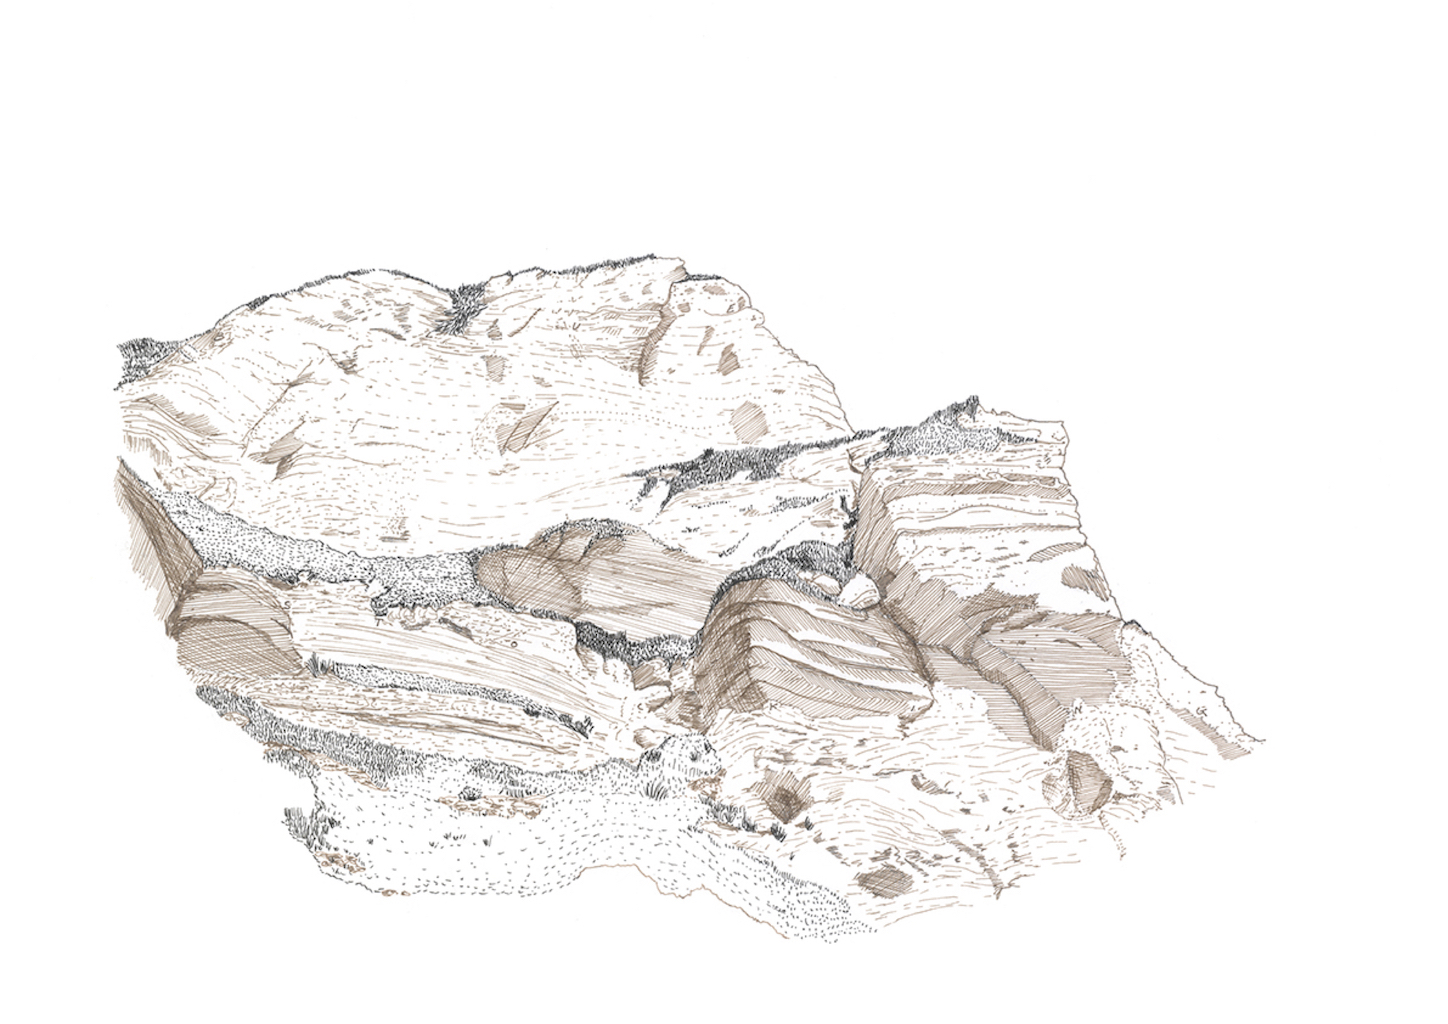 Coded Landscapes is a series of five ink drawings which depict the crumbling coastlines of the Jurassic coast. Hidden within the fine lines are messages to the audience which were inspired from historic, cultural and geological research of the East Devon district. The poetic statements underline the mystery of nature and our struggle to decipher and control it.